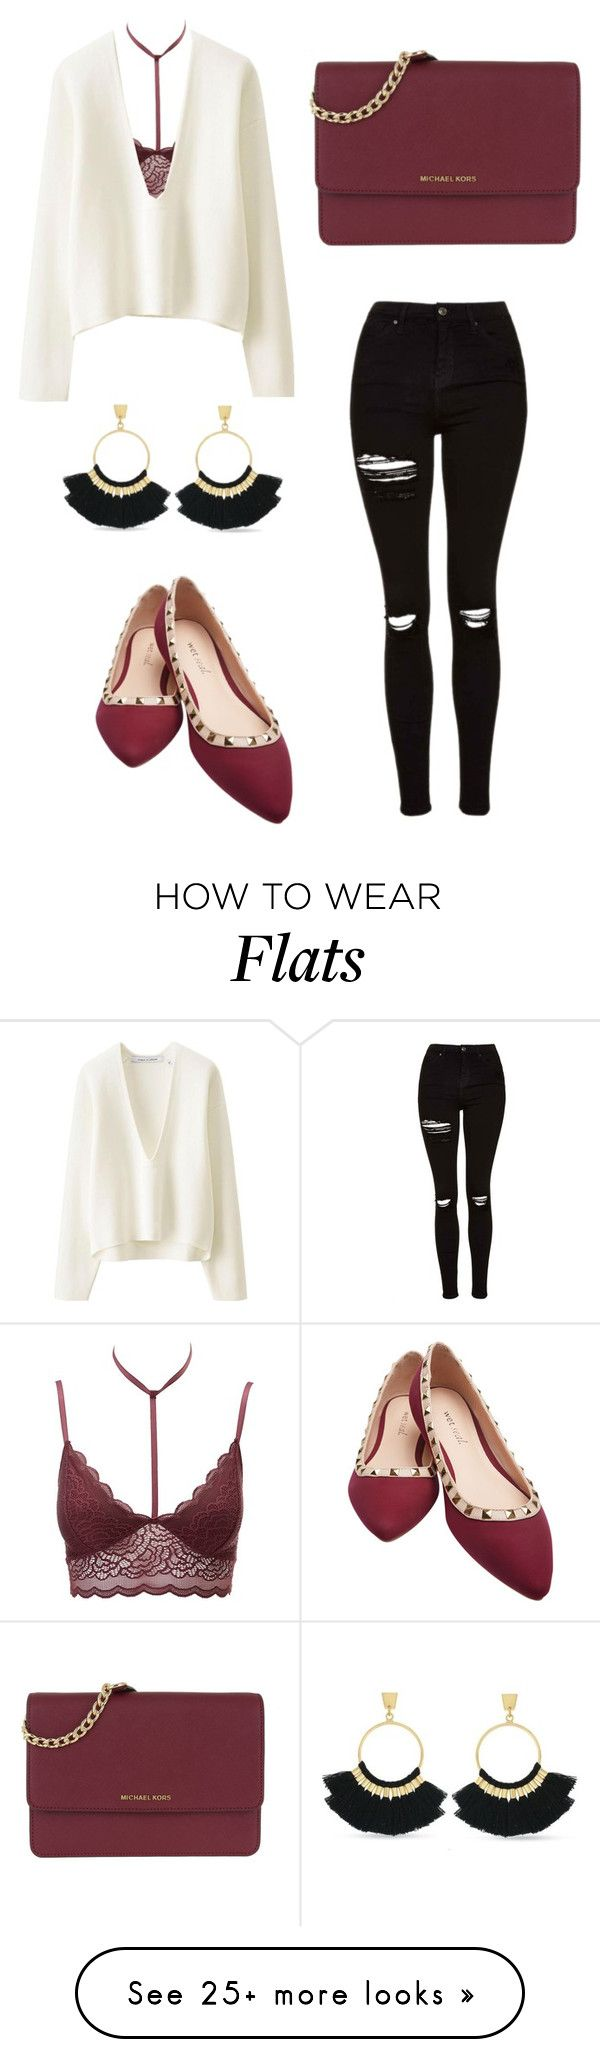 """""""26/01/2018"""" by ellieacd on Polyvore featuring Topshop, Charlotte Russe, Lemaire, Wet Seal, MICHAEL Michael Kors and Vince Camuto"""